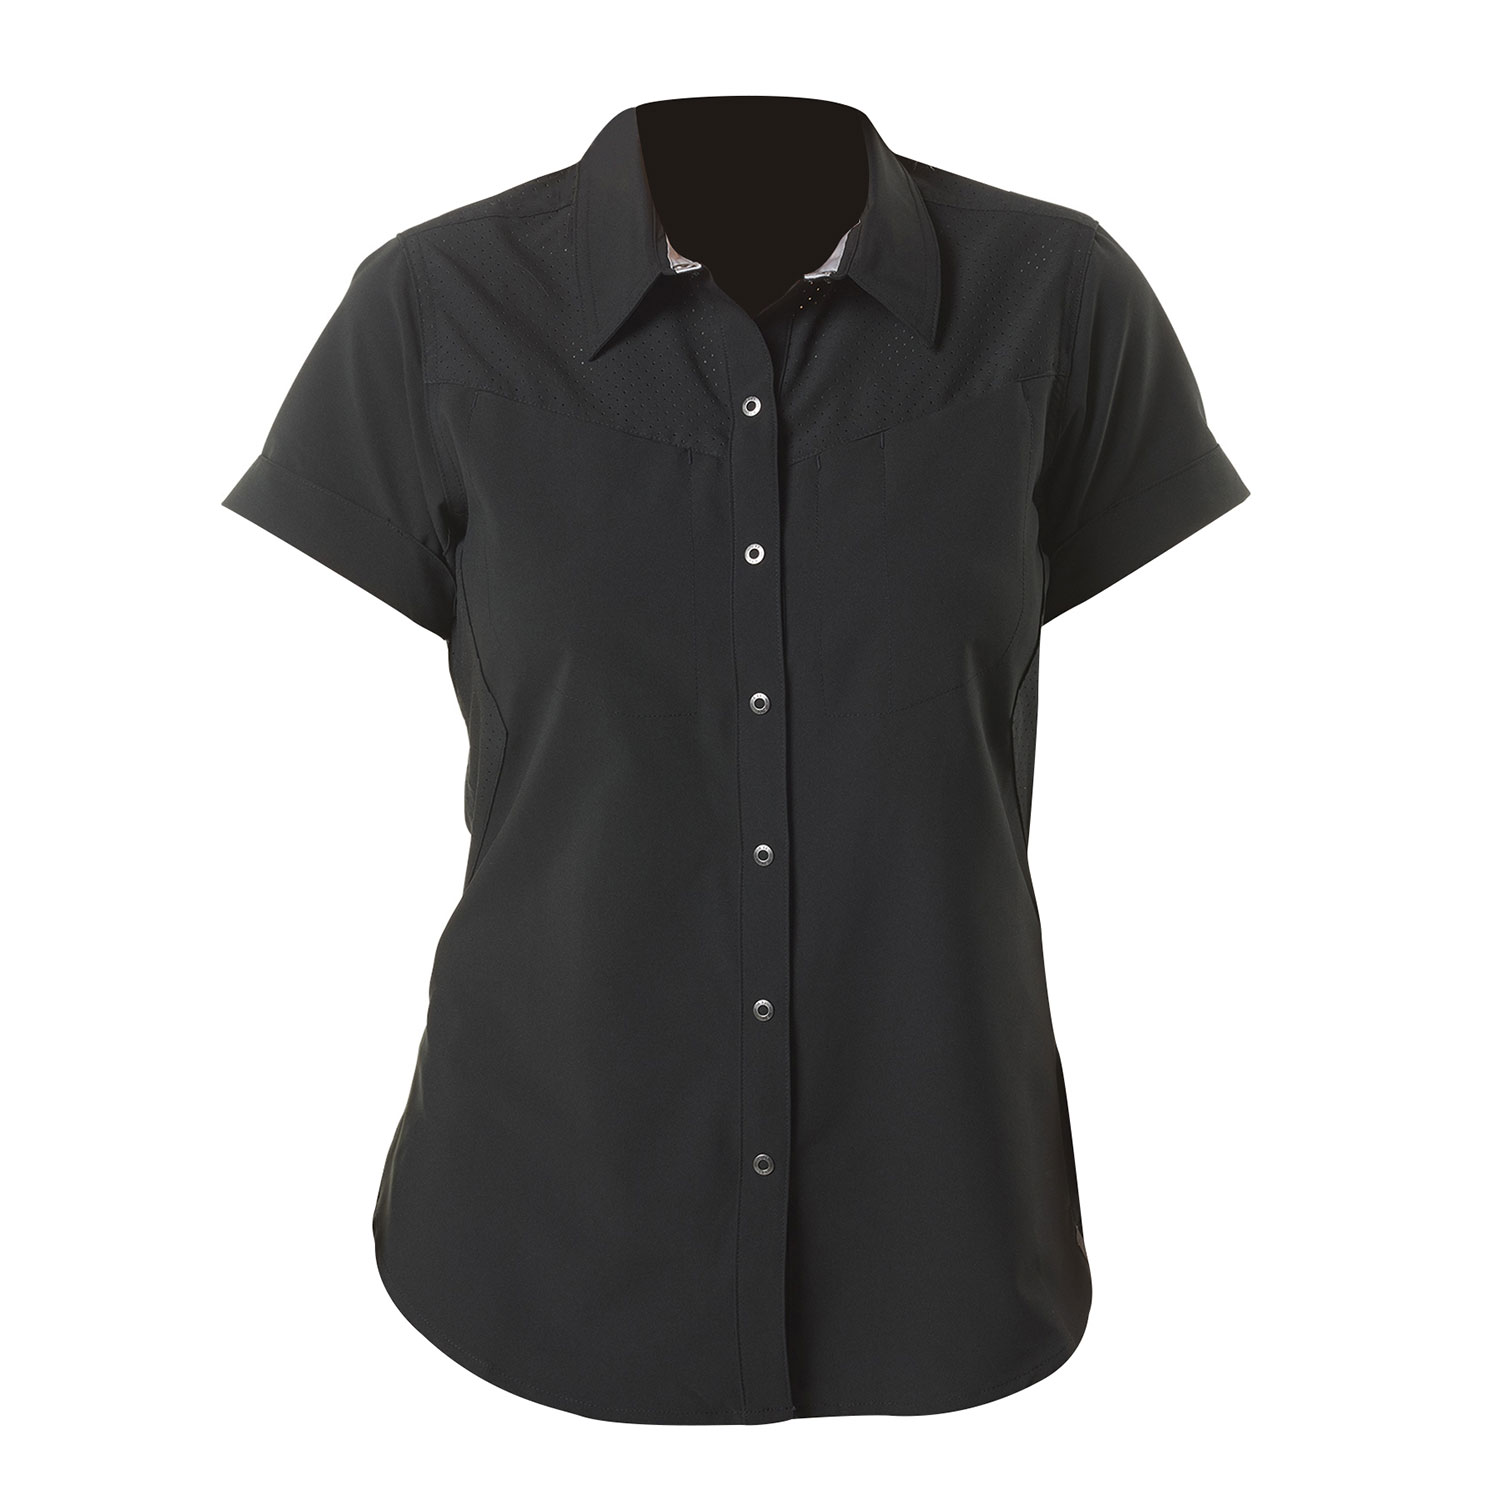 5.11 Women's Freedom Flex Short Sleeve Shirt